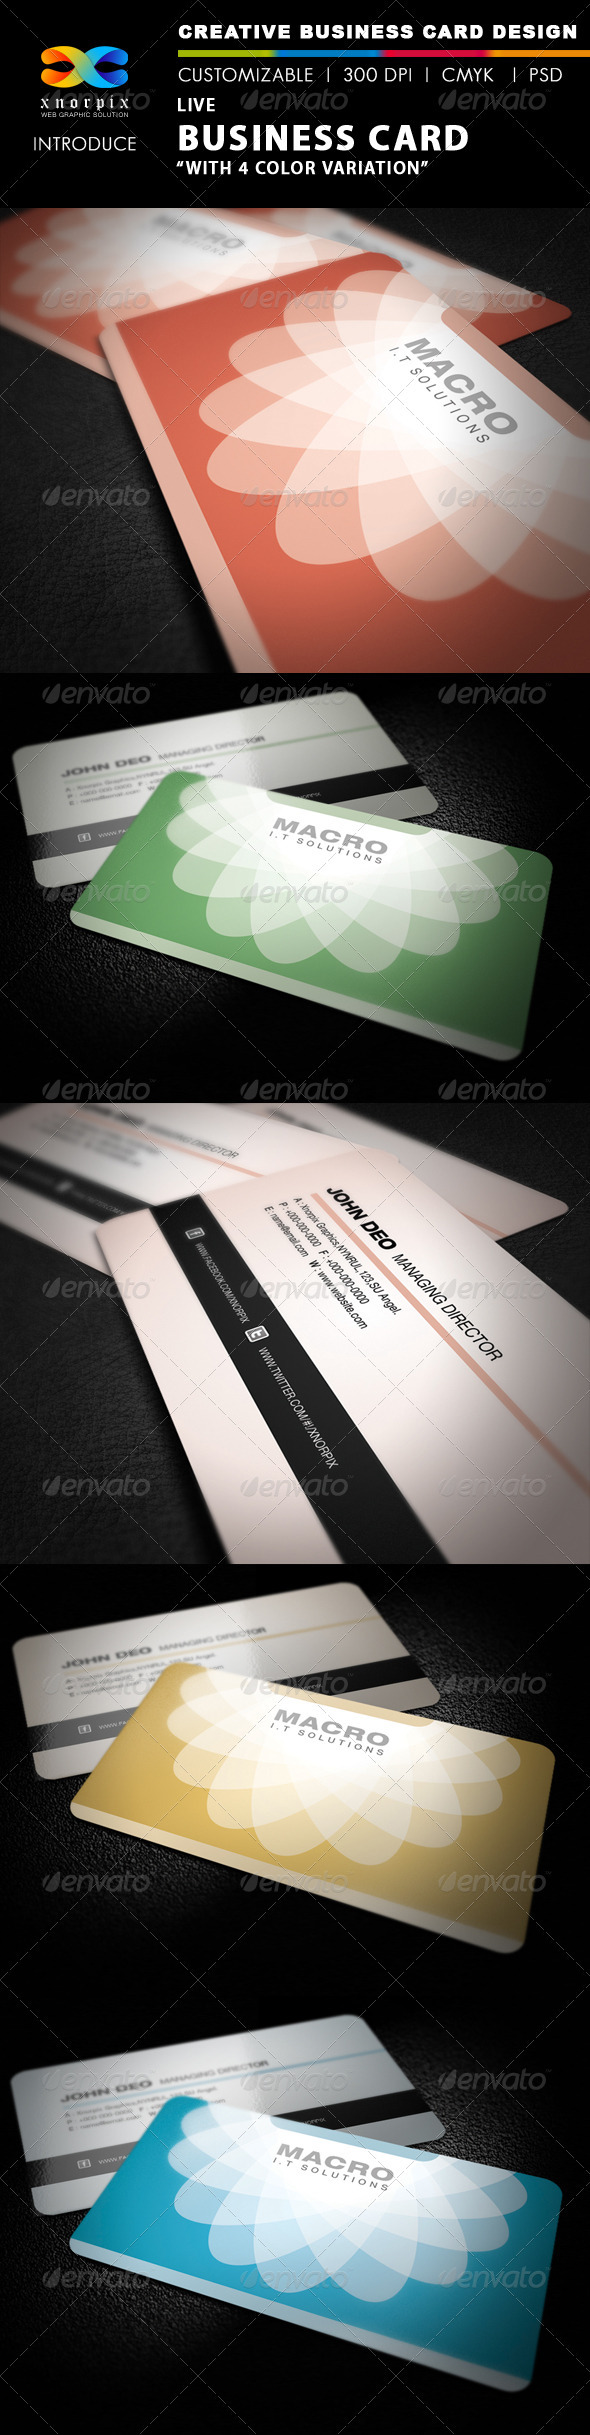 Live Business Card   Adobe photoshop, Fonts and Creative